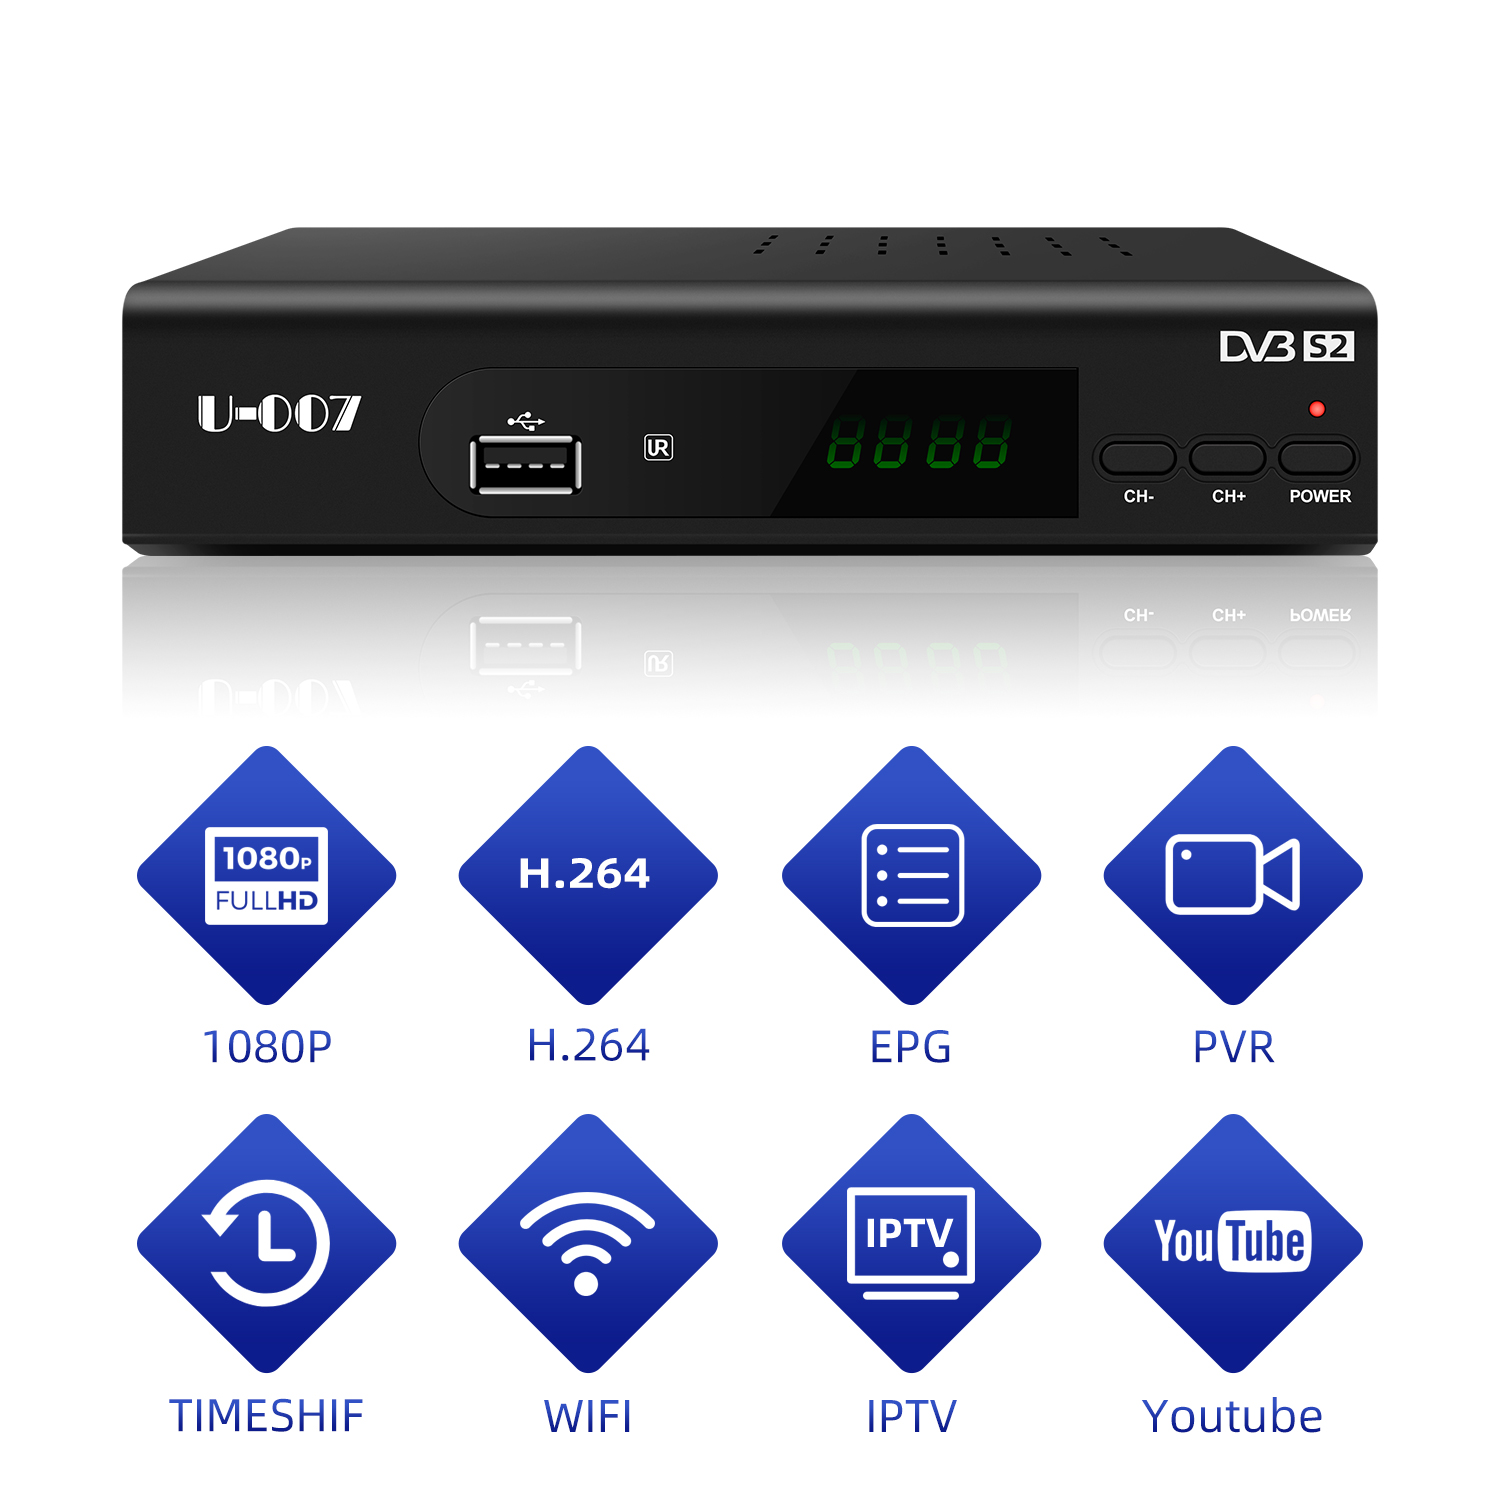 Junuo Satellite Receiver Manufacturer Latest Best Satellite Receiver Box for Pakistan Philippine?imageView2/1/w/400/h/300/q/80